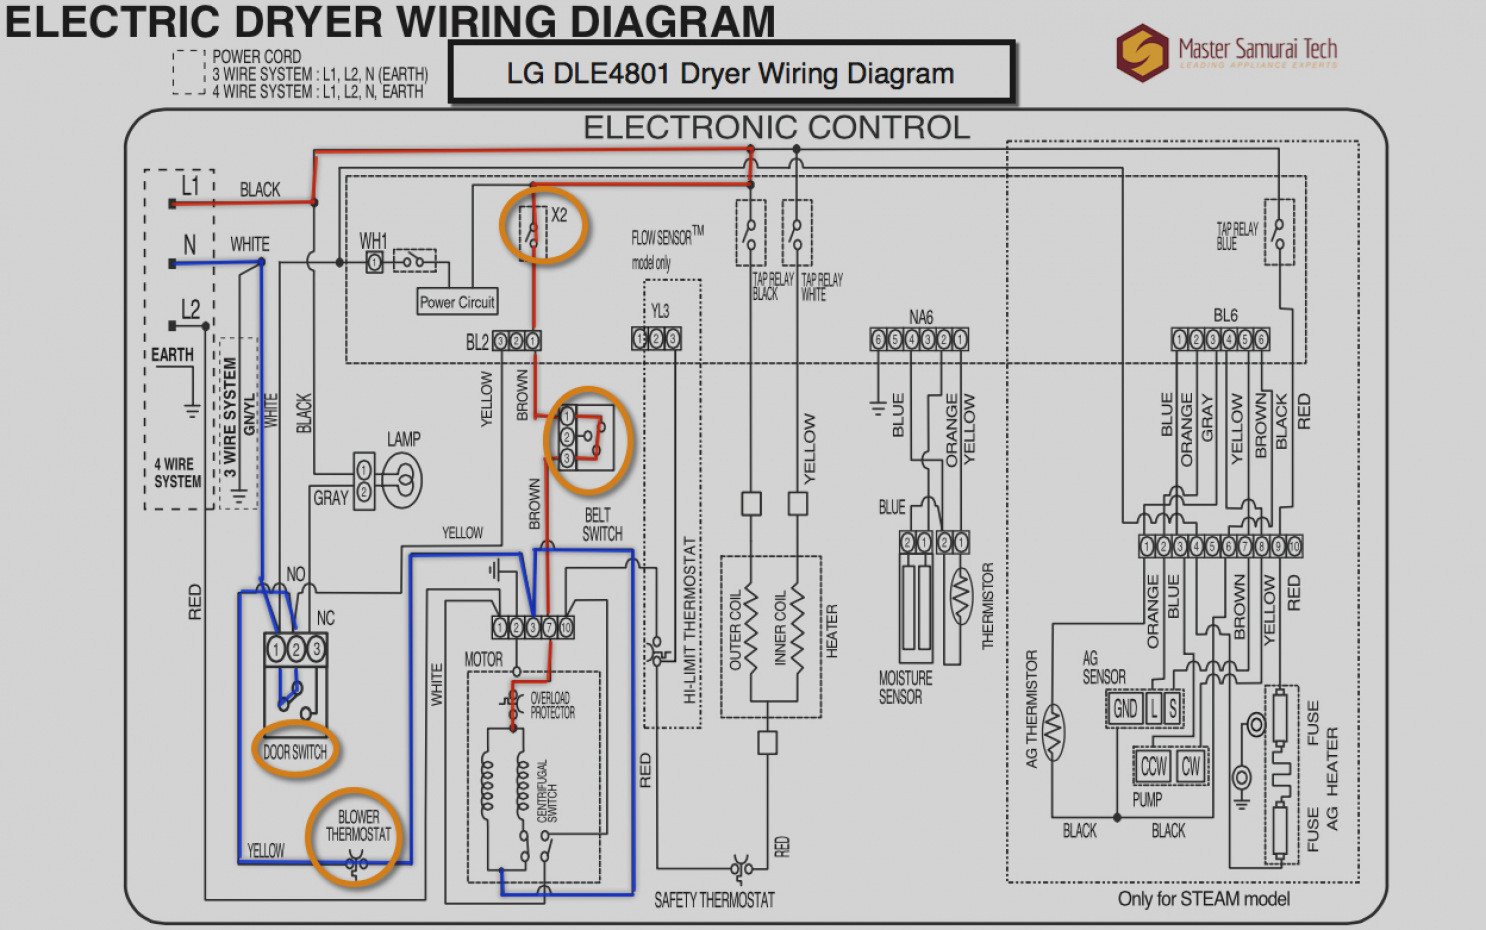 wiring diagram for electrolux dryer wiring diagram Dishwasher Loading Diagram wiring diagram for electrolux dryer wiring diagram detailedelectrolux dryer wiring diagram wiring diagram explained body parts